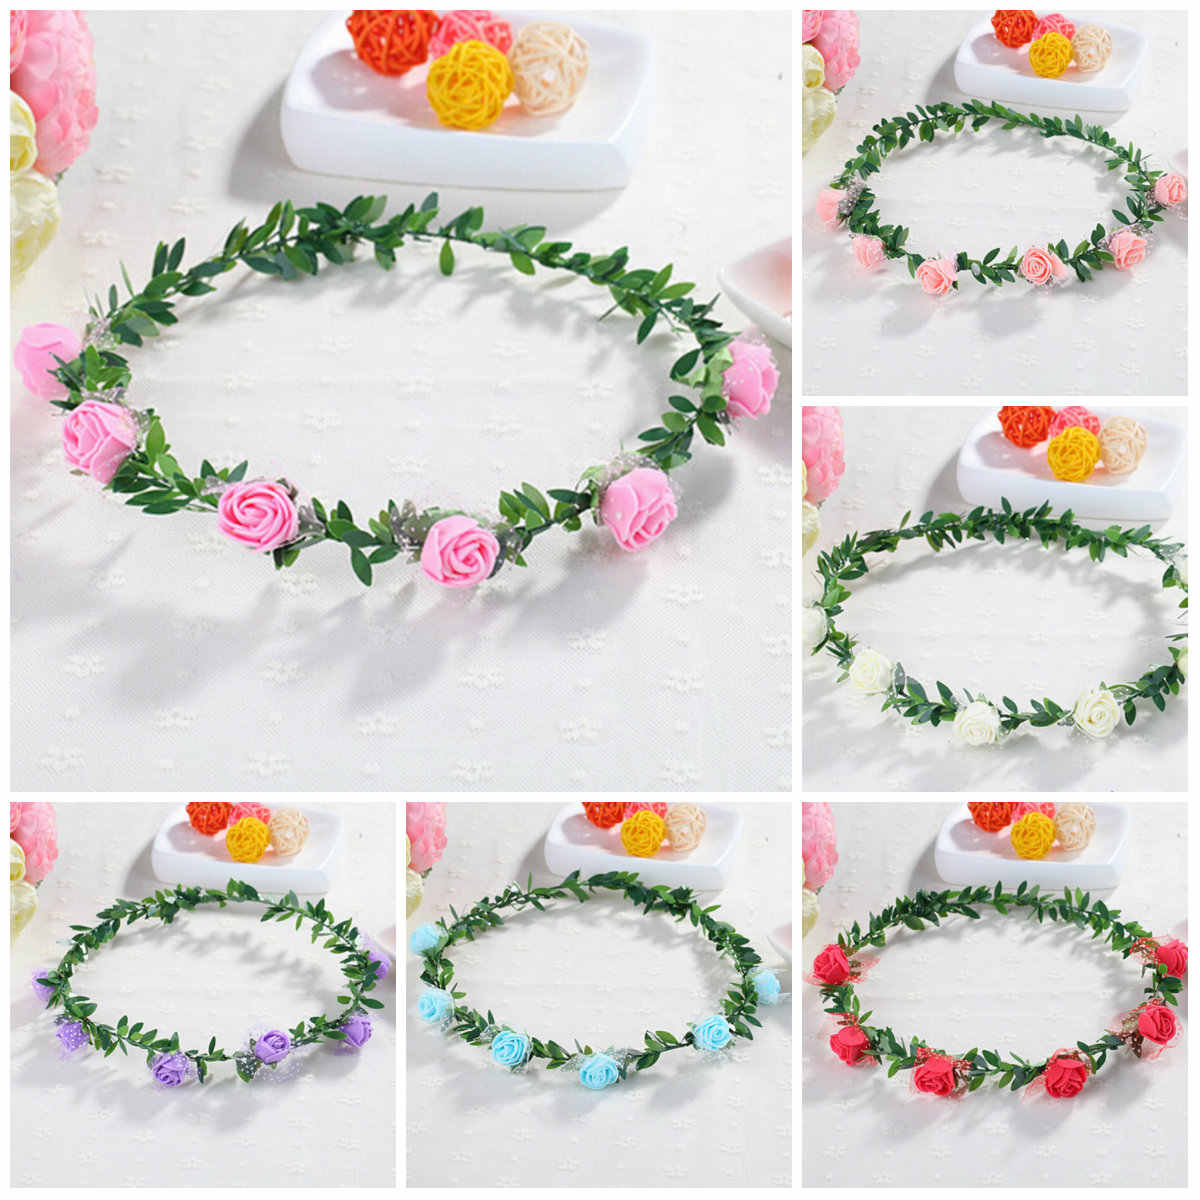 Crown Hair Band Rose Carnations Peony Flower Halo Bridal Floral Wreath Mint Head Wreath Party Wedding Headpiece Bridesmaid